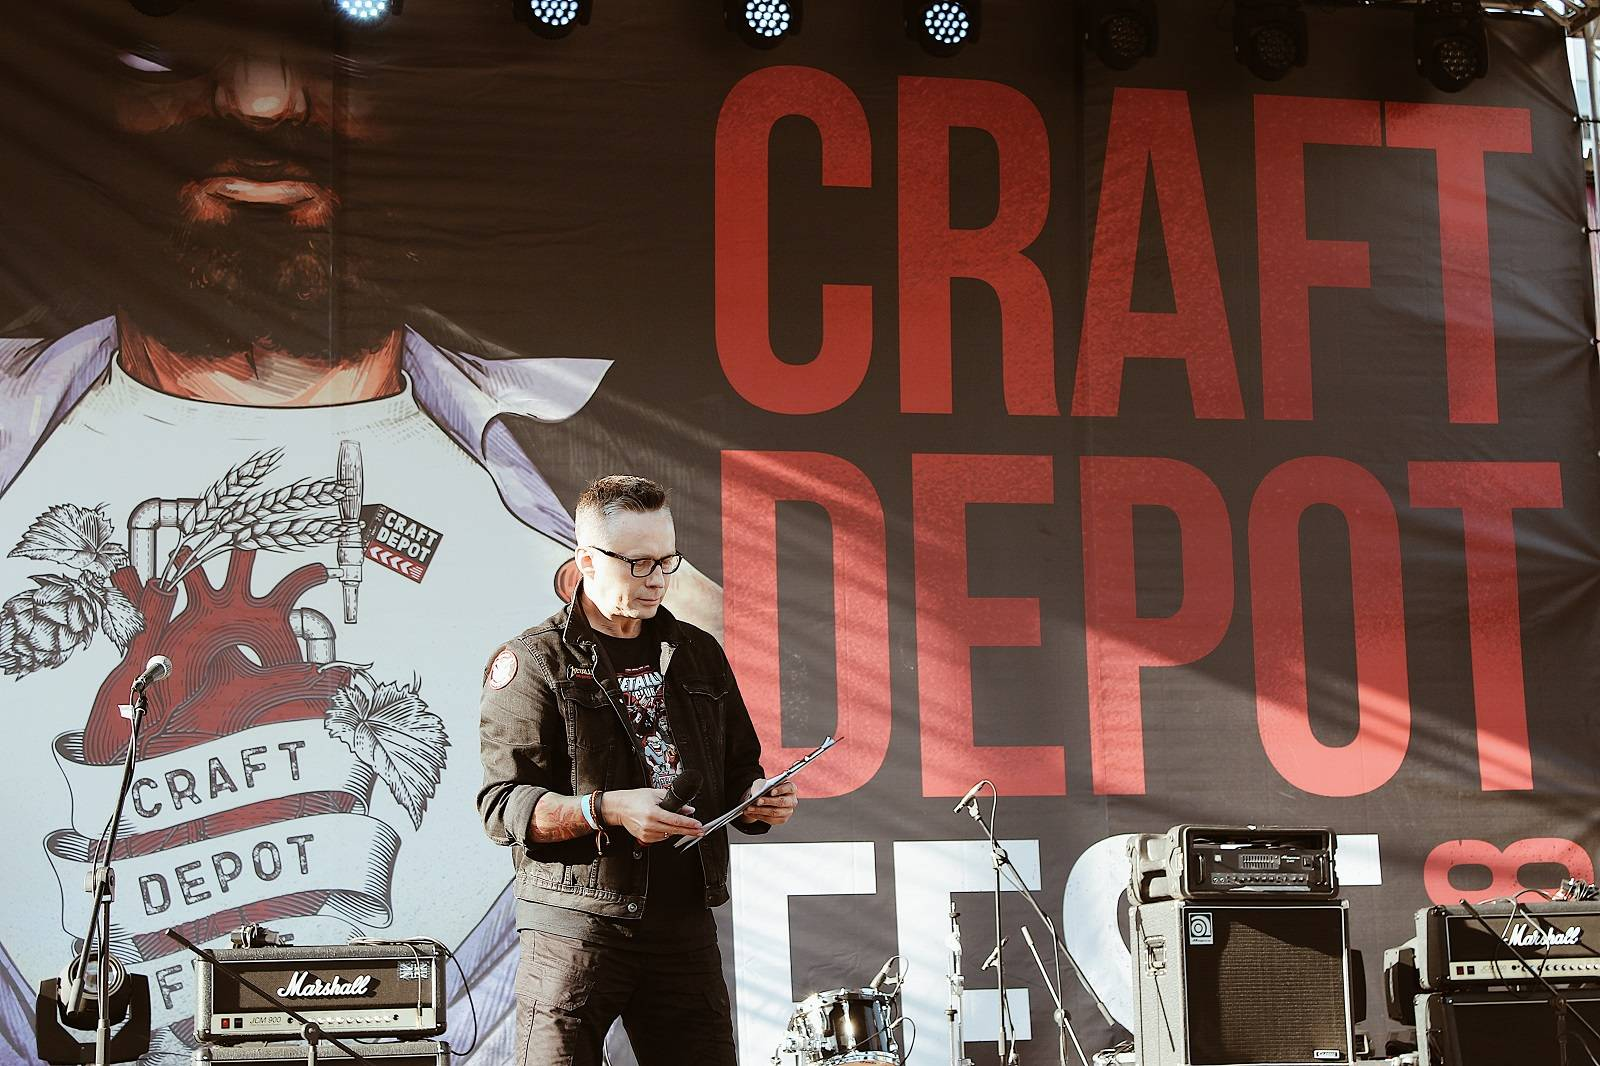 CRAFT DEPOT FEST 2018 Flacon- Stone Forest